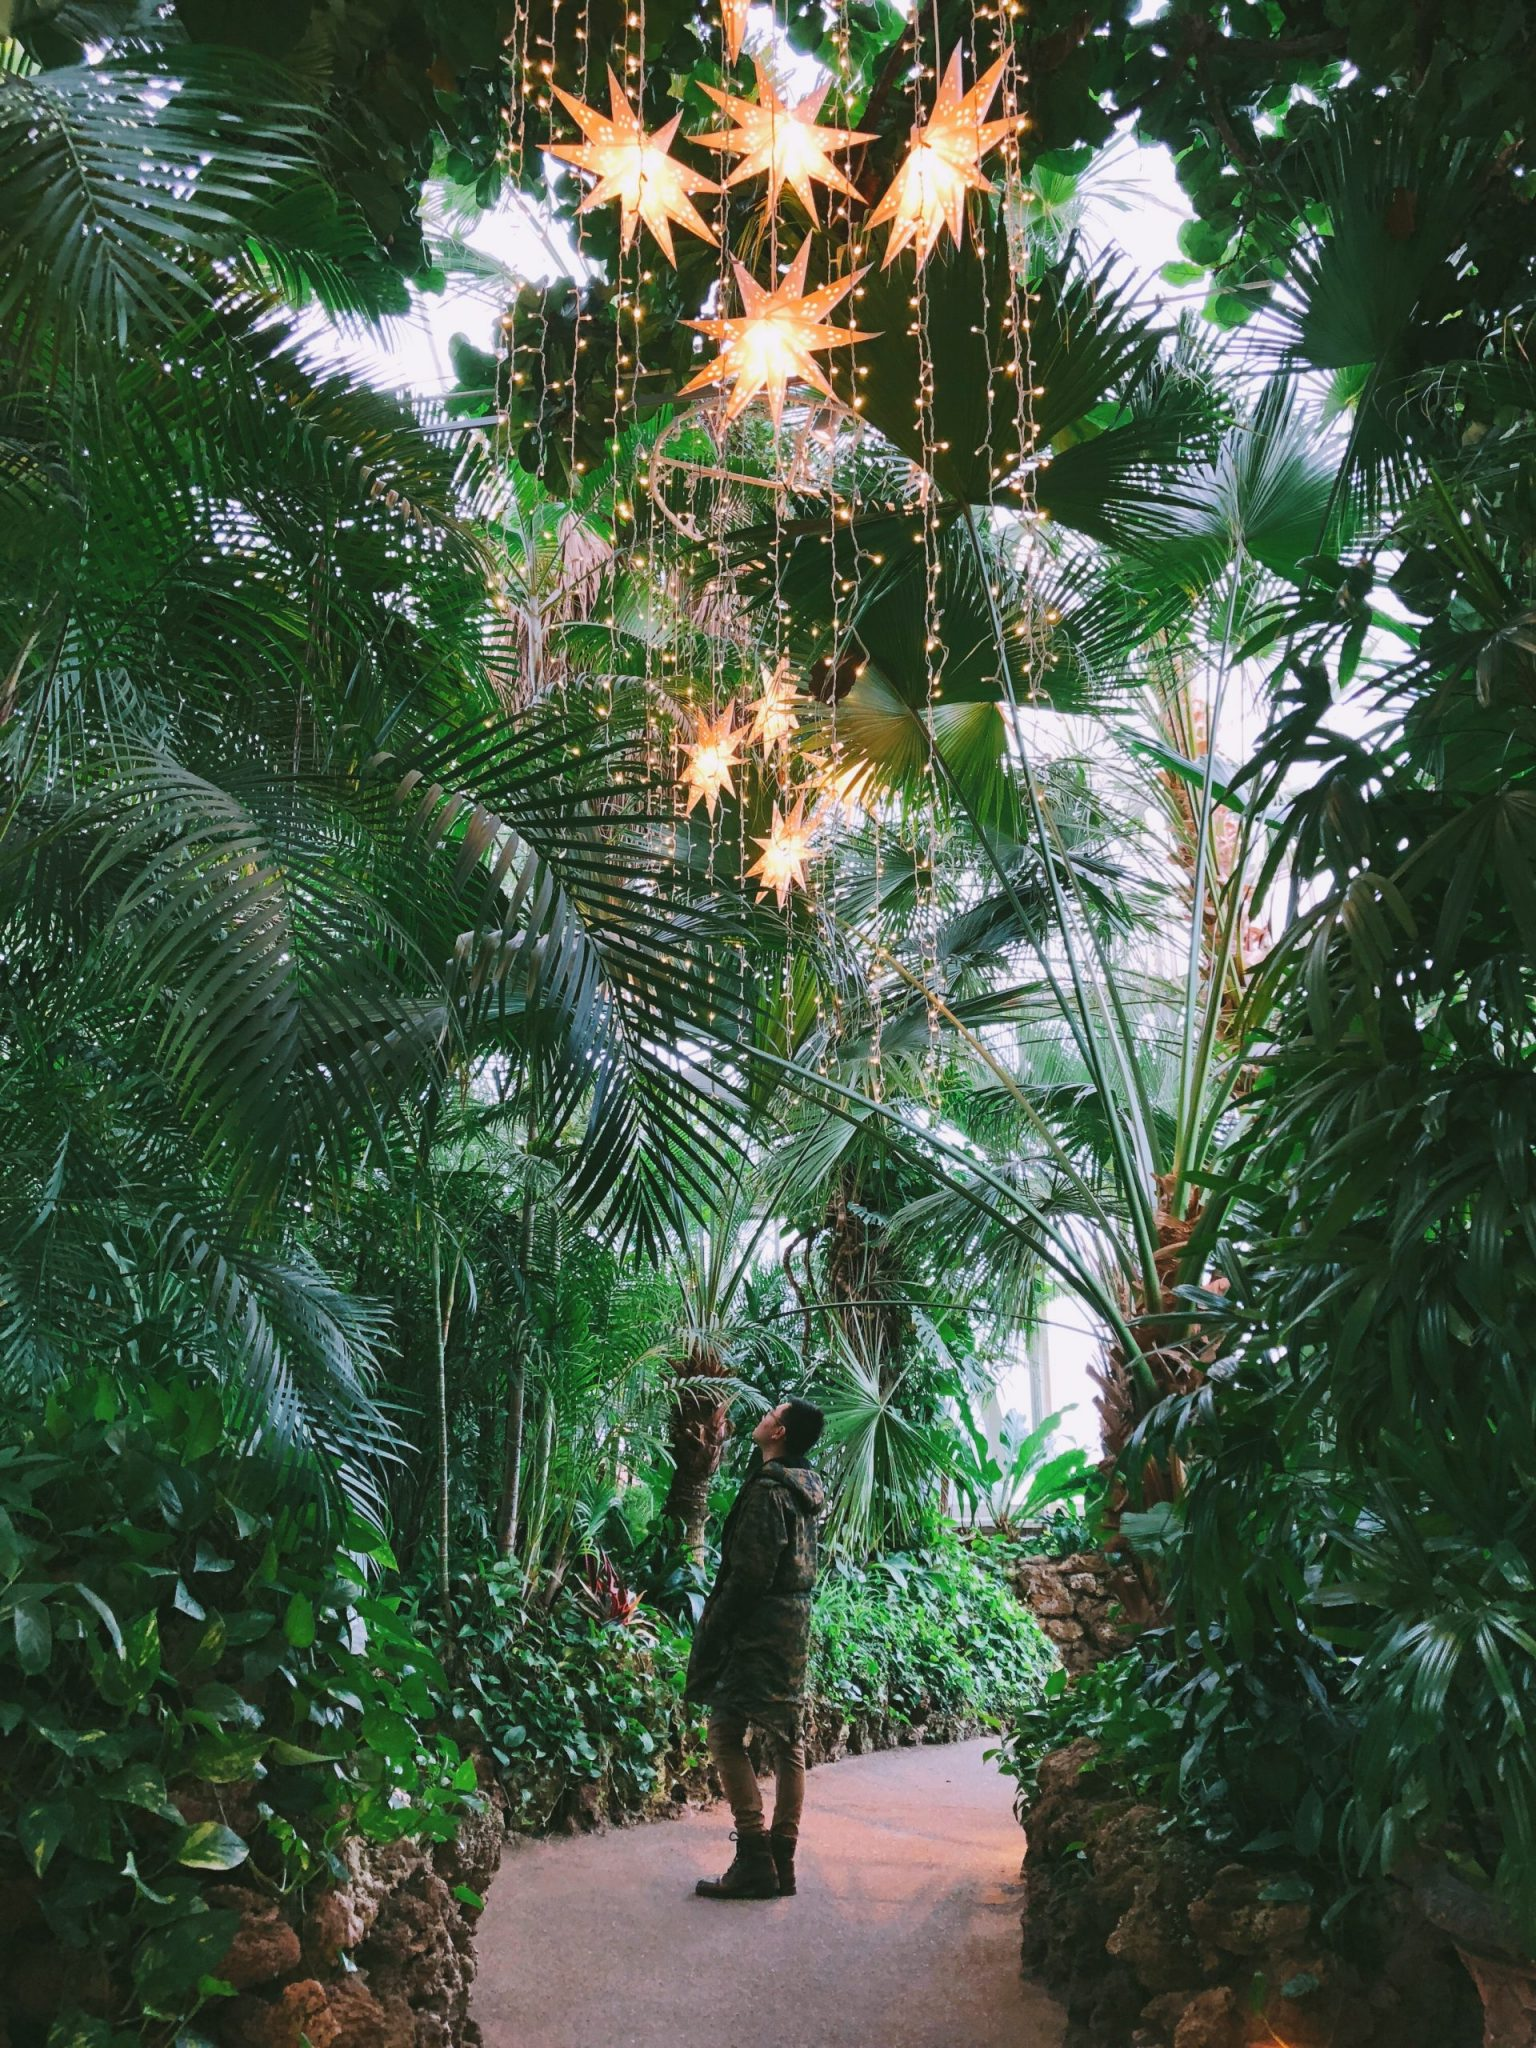 One of the best things to do in Pittsburgh is to visit the botanical gardens!